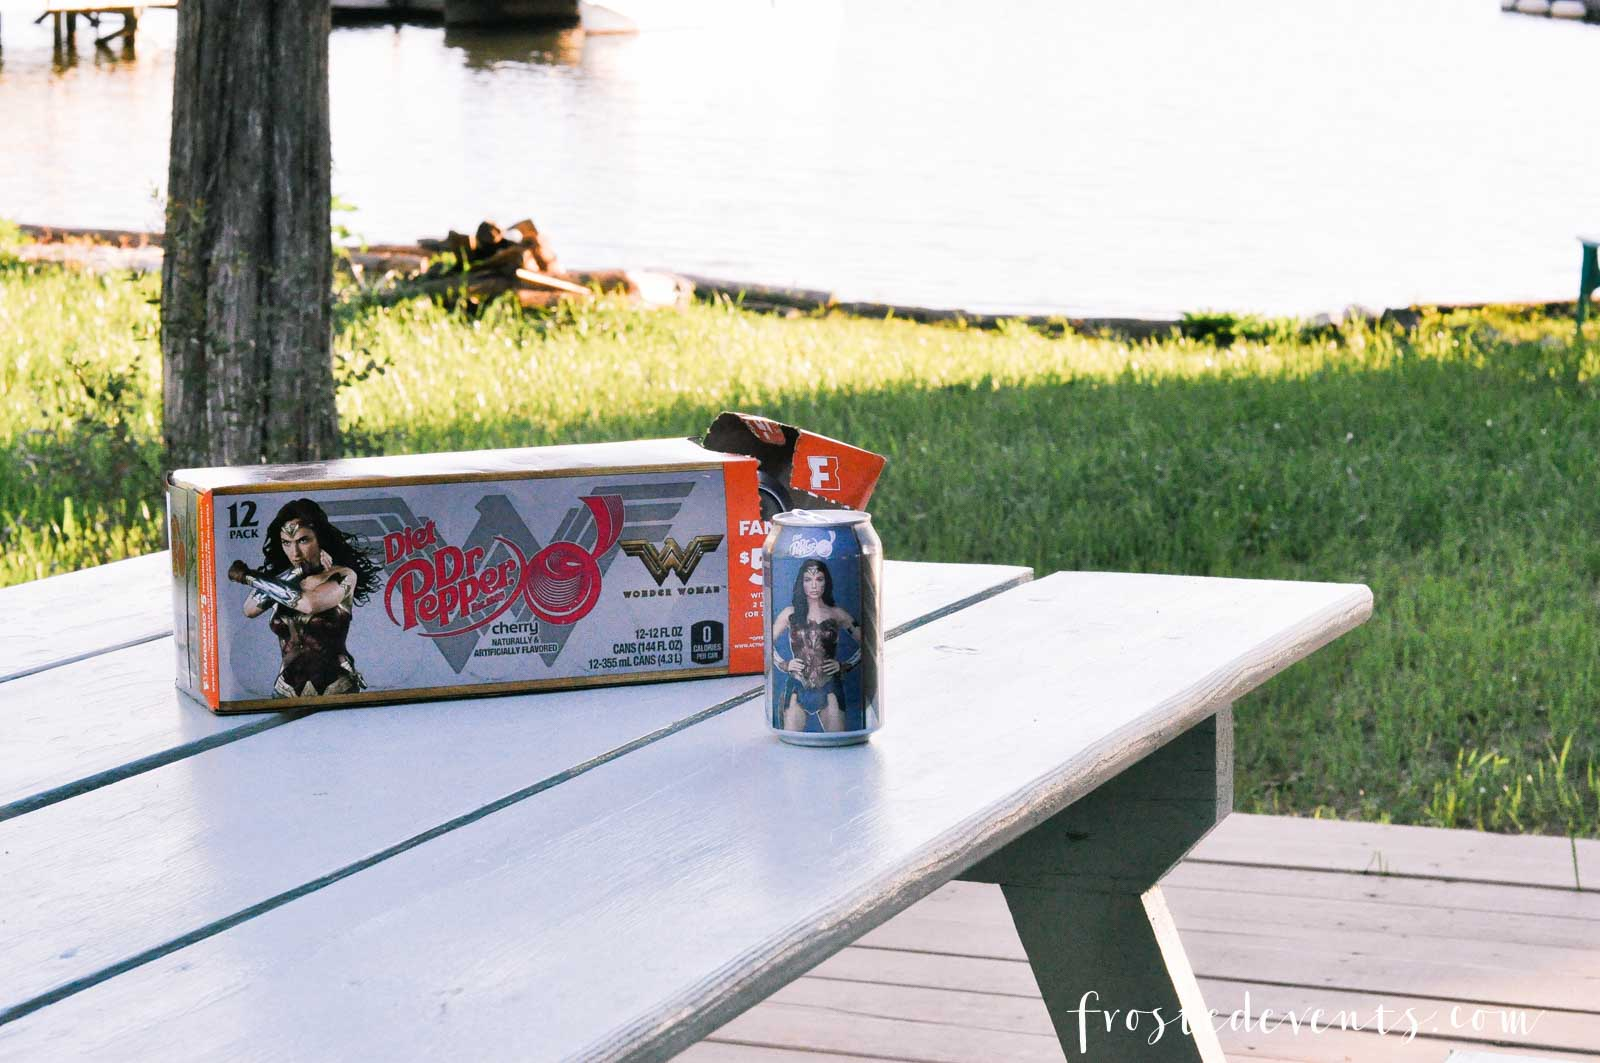 Wonder Woman Movie 2017 My Real Wonder Woman Story via Misty Nelson, mom blogger at frostedMOMS @frostedevents